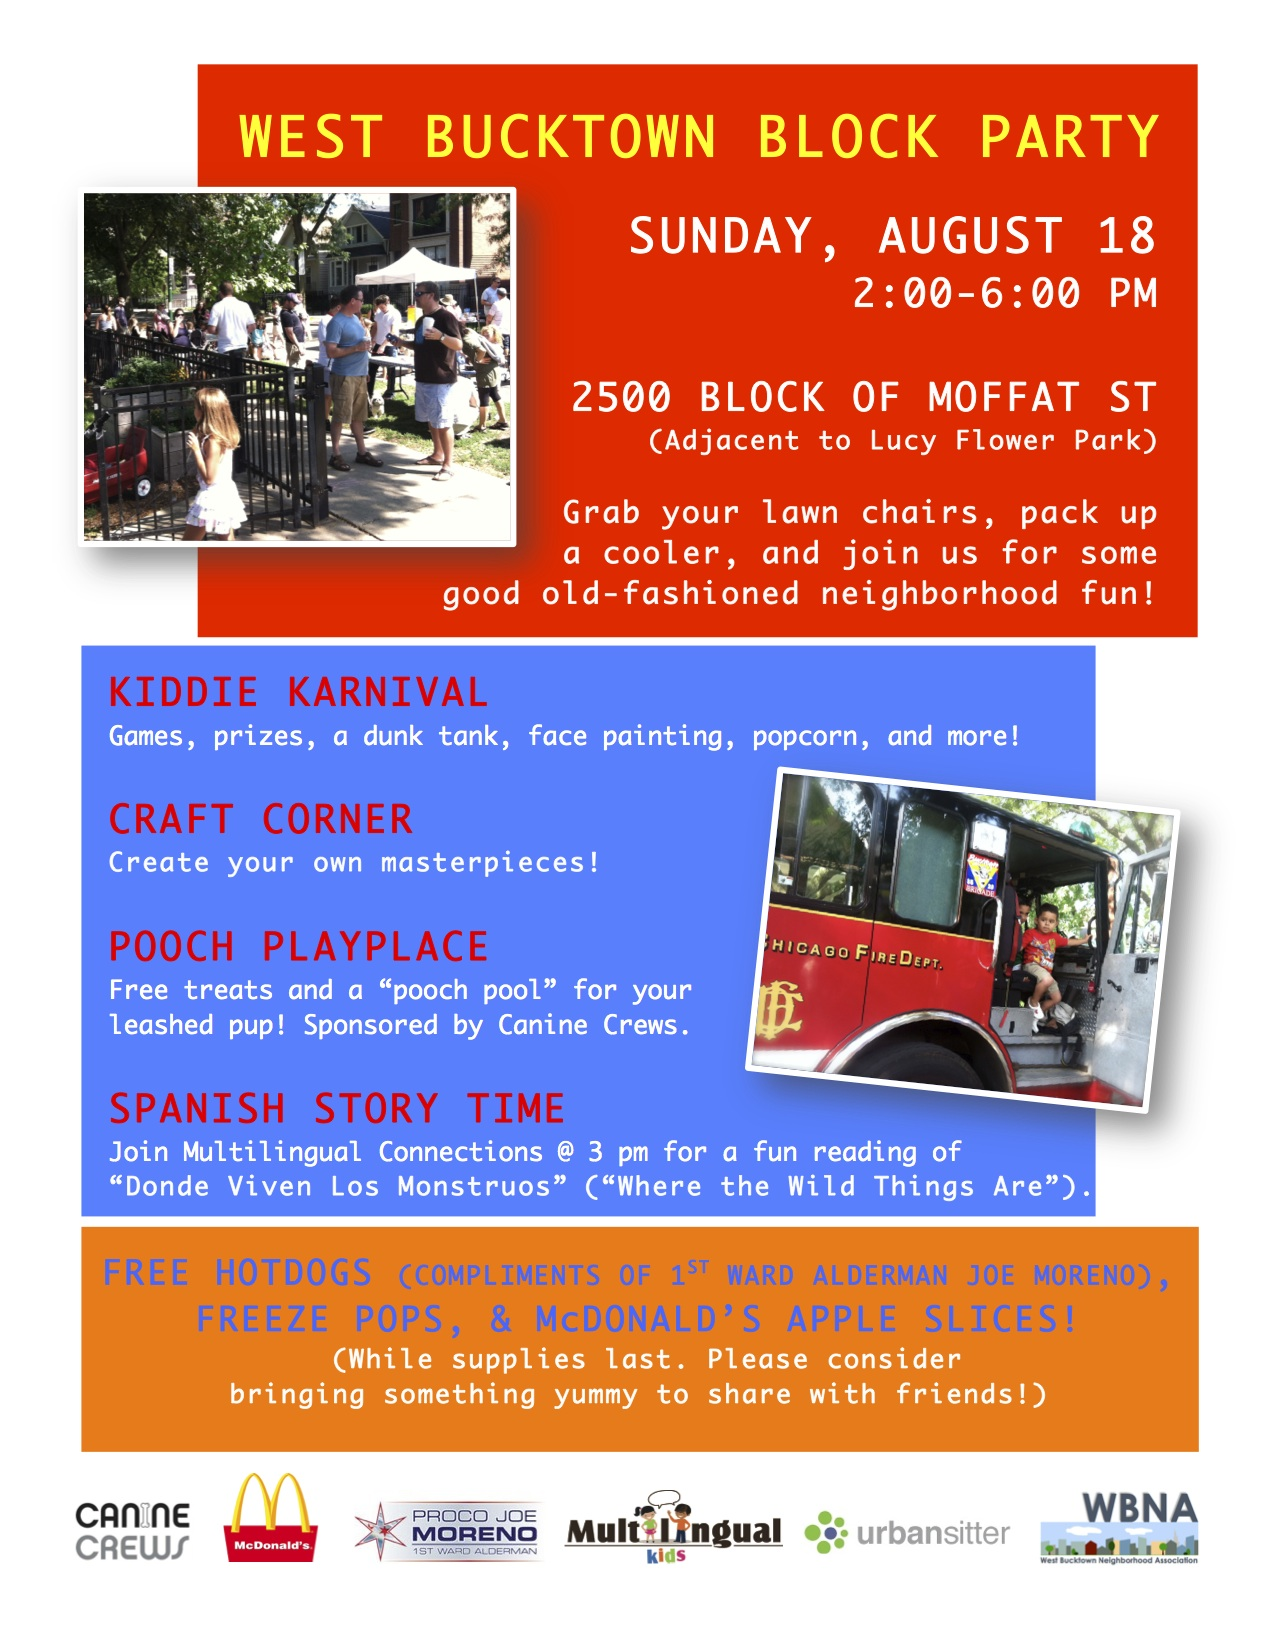 IMAGE: Block Party Flyer